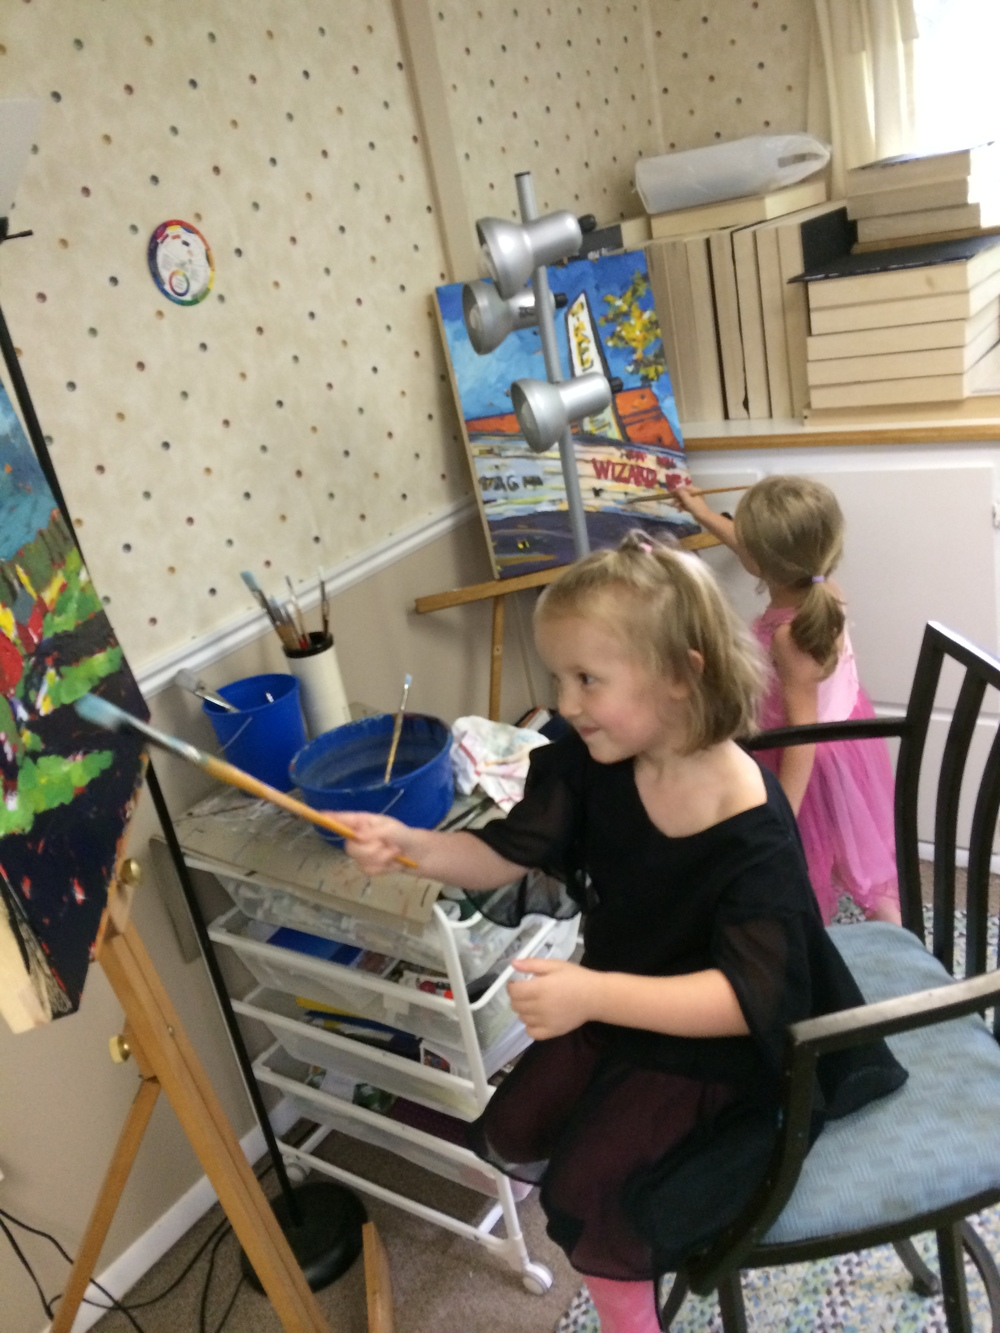 my kids like to grab dry brushes and pretend they're me, painting my paintings.